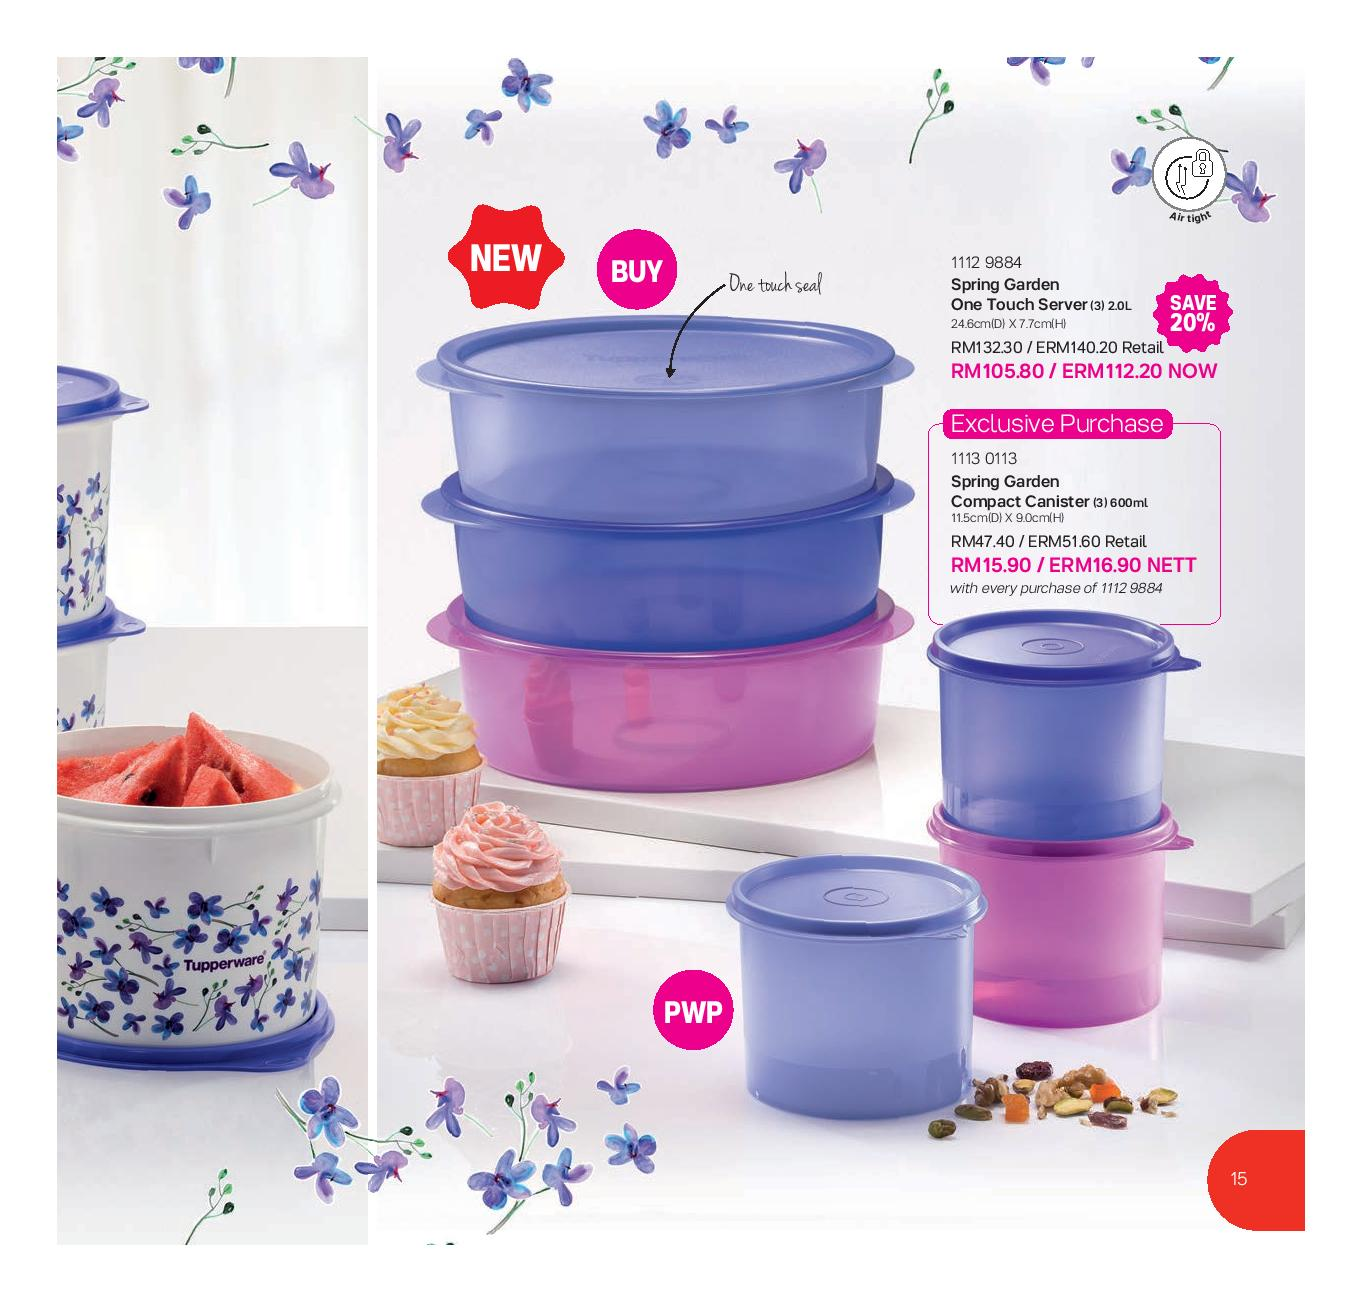 New vehicle  pare in addition 9 Piece Customer Favorites Setfree Dont Miss Out e2 80 8f also New vehicle  pare likewise Tupperware Catalog 01 April 2017 14 May as well Avon Printed Trapeze Dress Totally Modern. on avon catalogs 2017